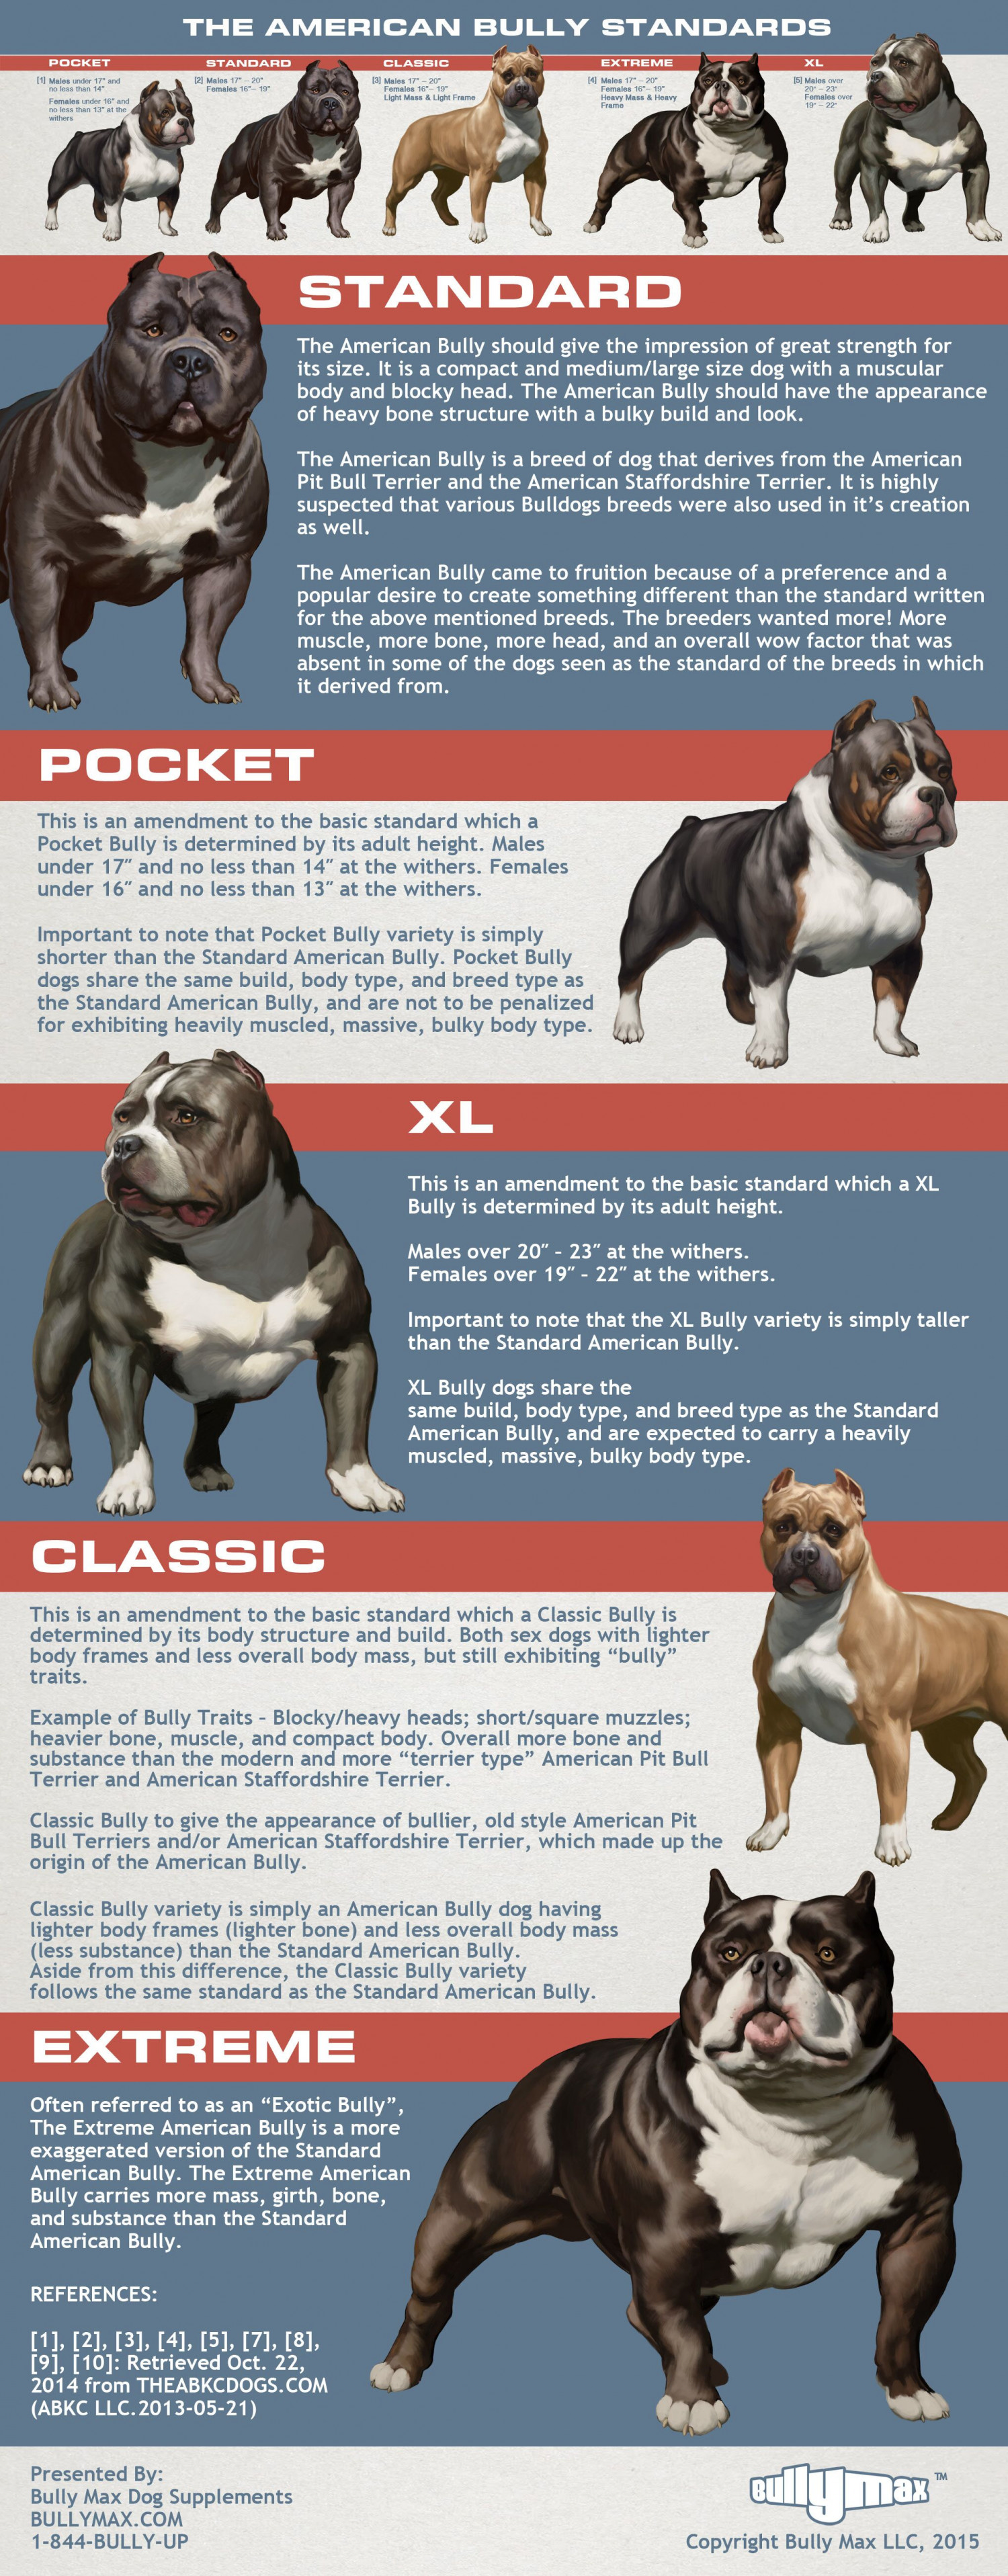 American Bully Standards Infographic